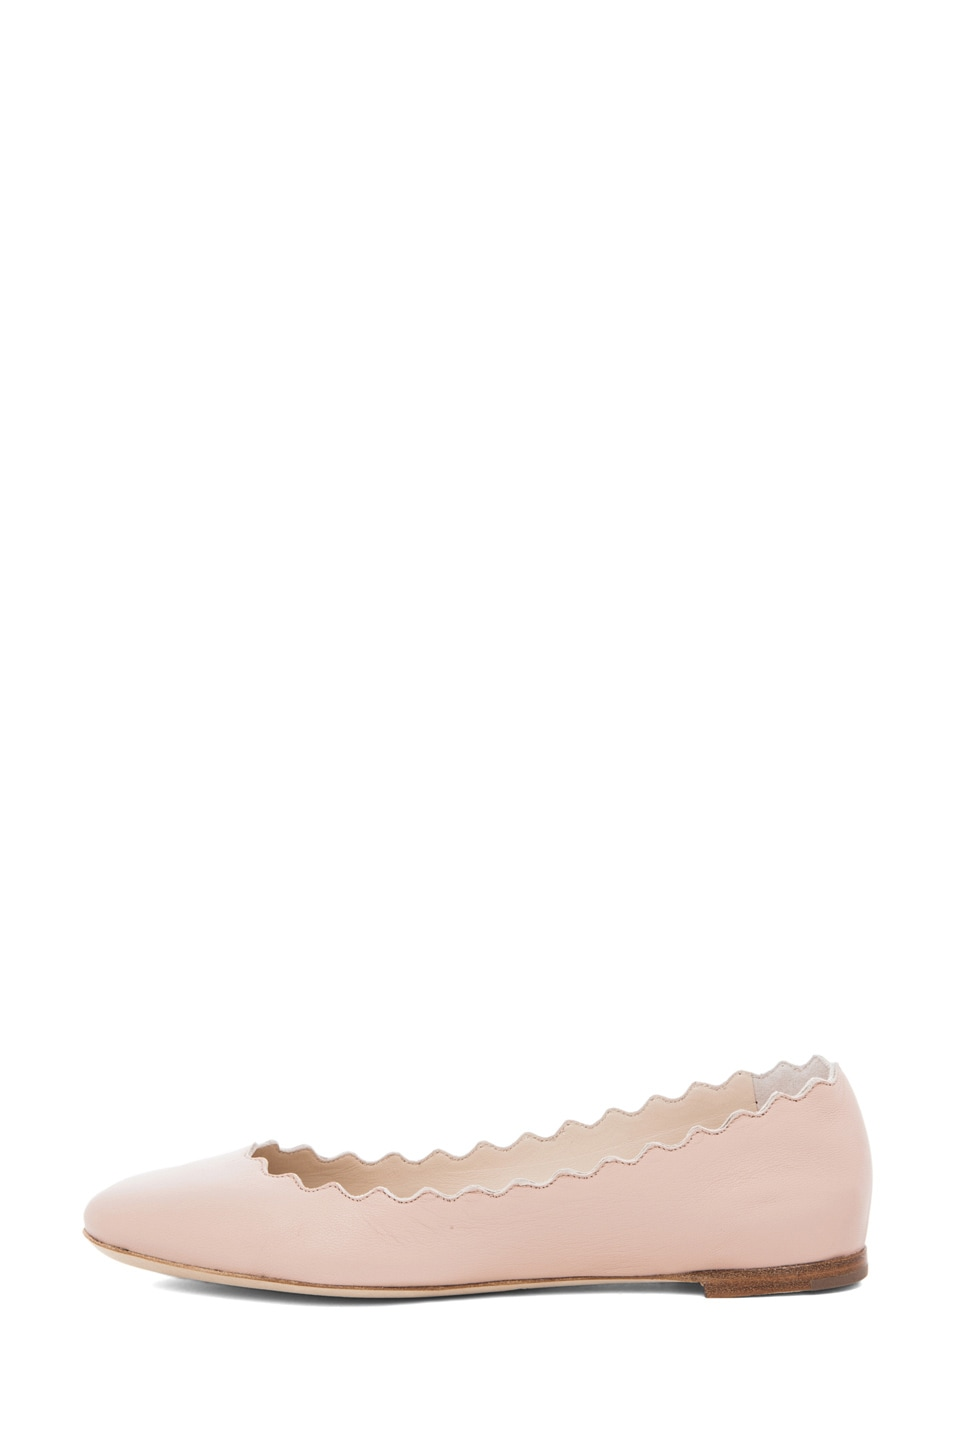 Image 1 of Chloe Lauren Scalloped Flat in Cipria